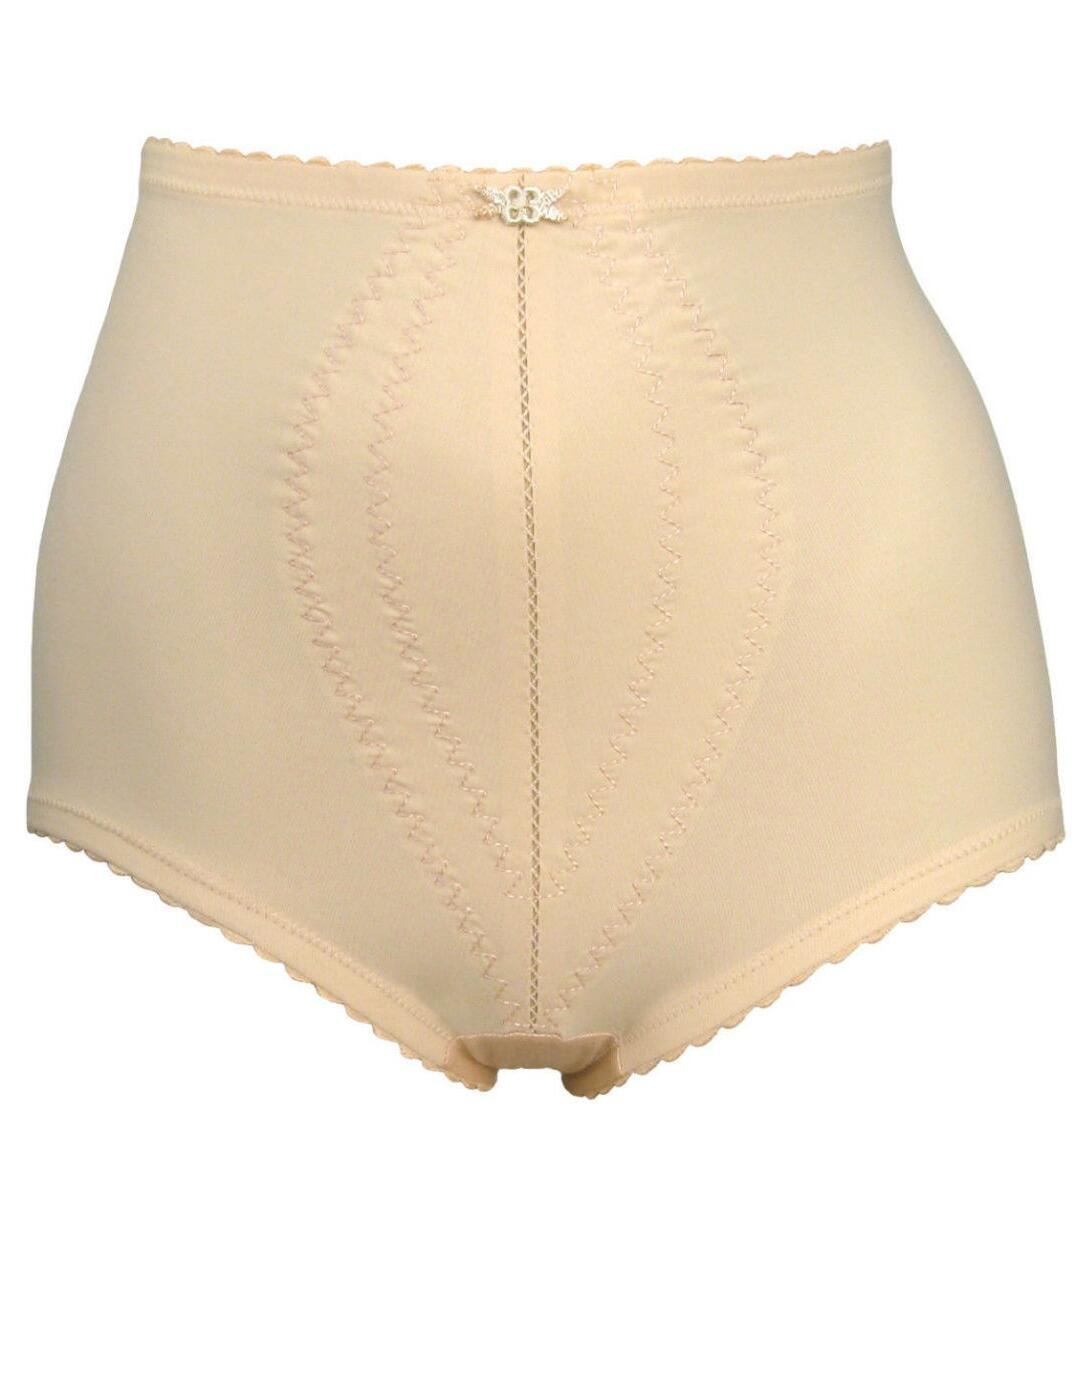 P2522 Playtex I Can't Believe It's A Girdle Maxi - 2522 Beige